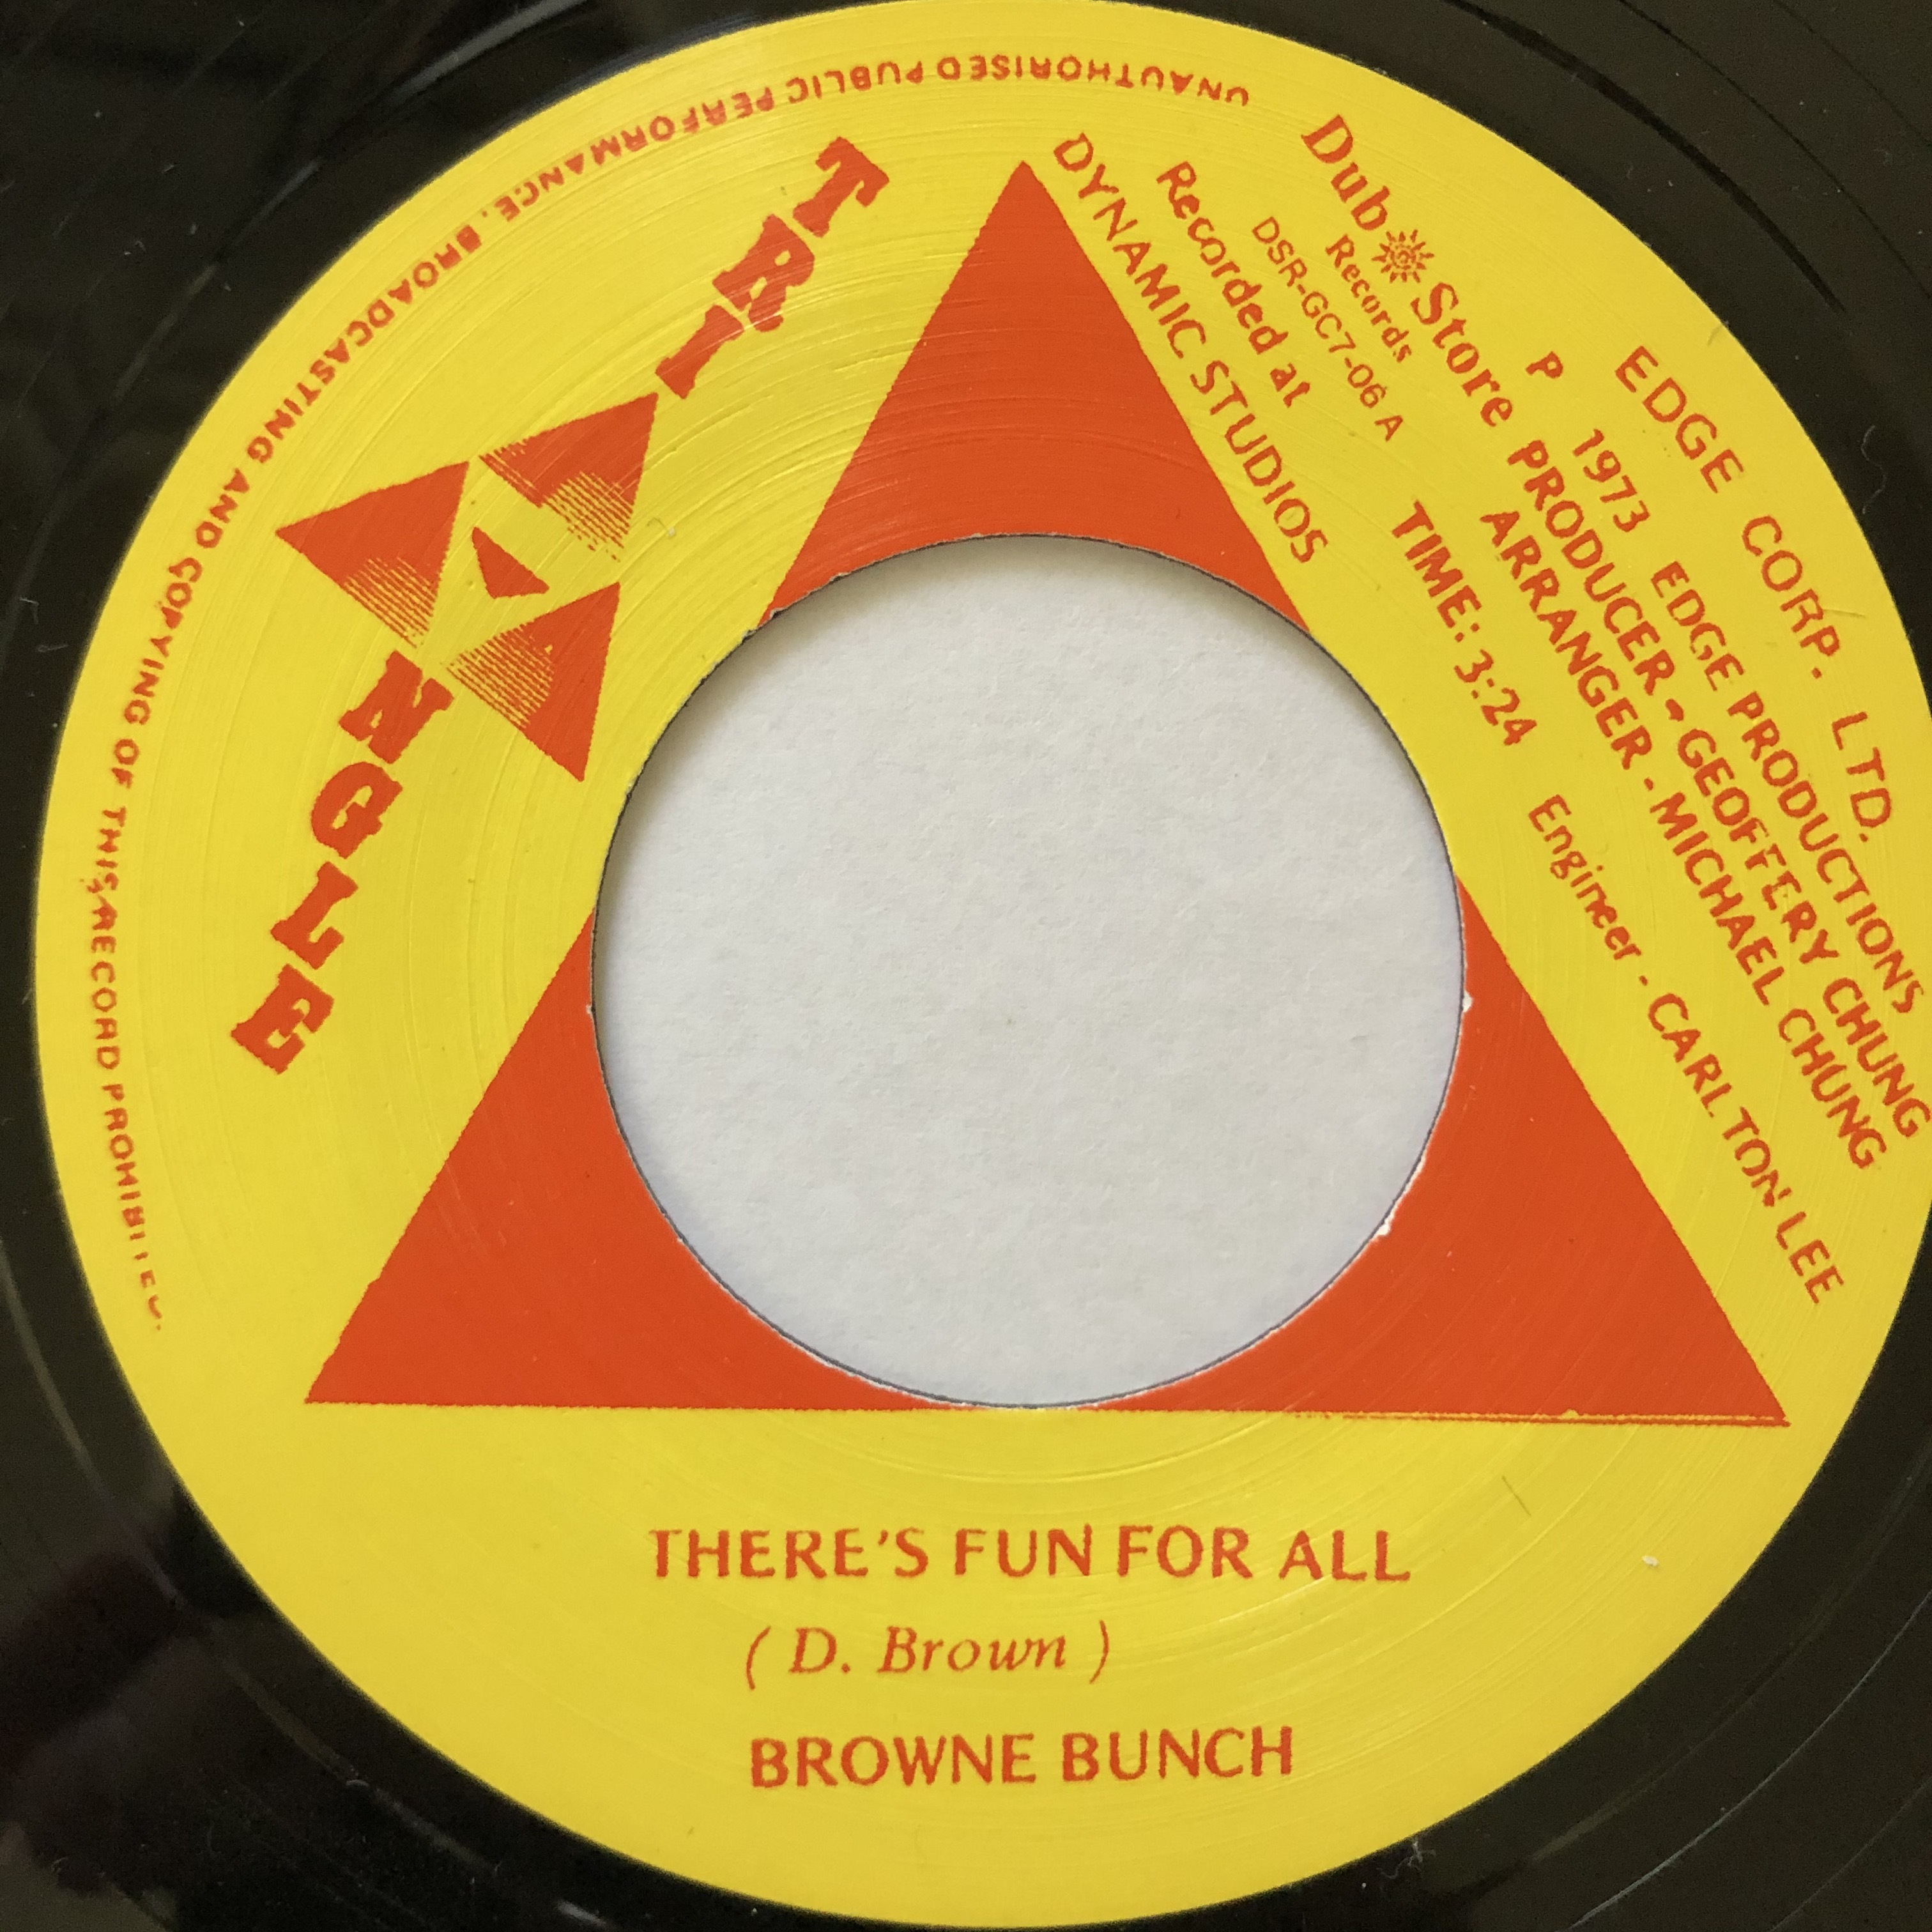 Browne Bunch - There's Fun For All【7-20596】